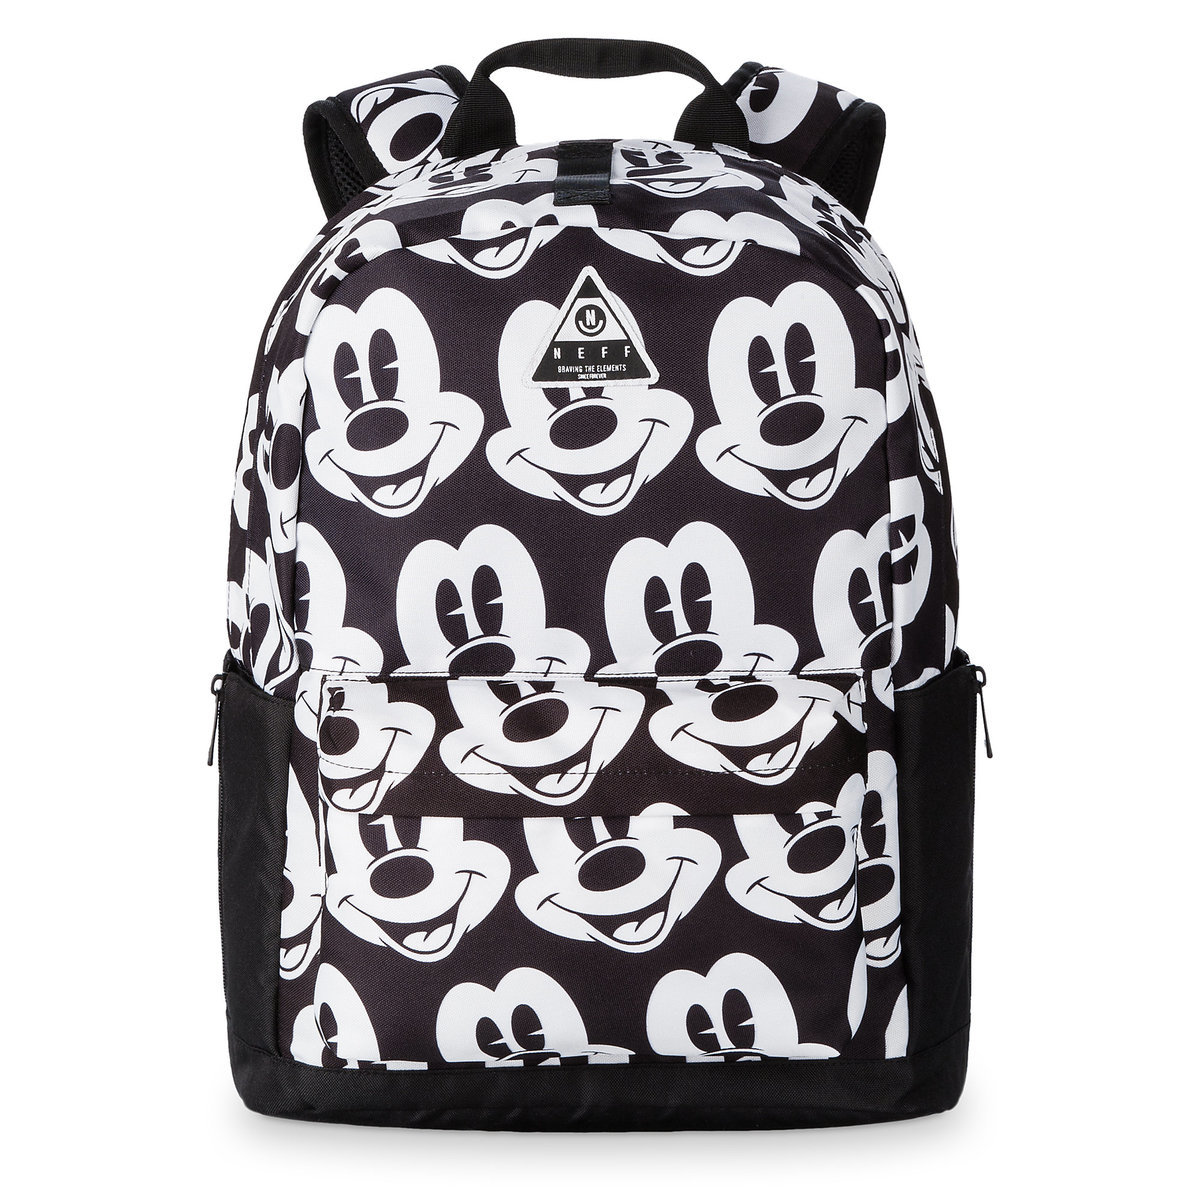 aecf3f9fb07 Product Image of Mickey Mouse Faces Backpack by Neff   1